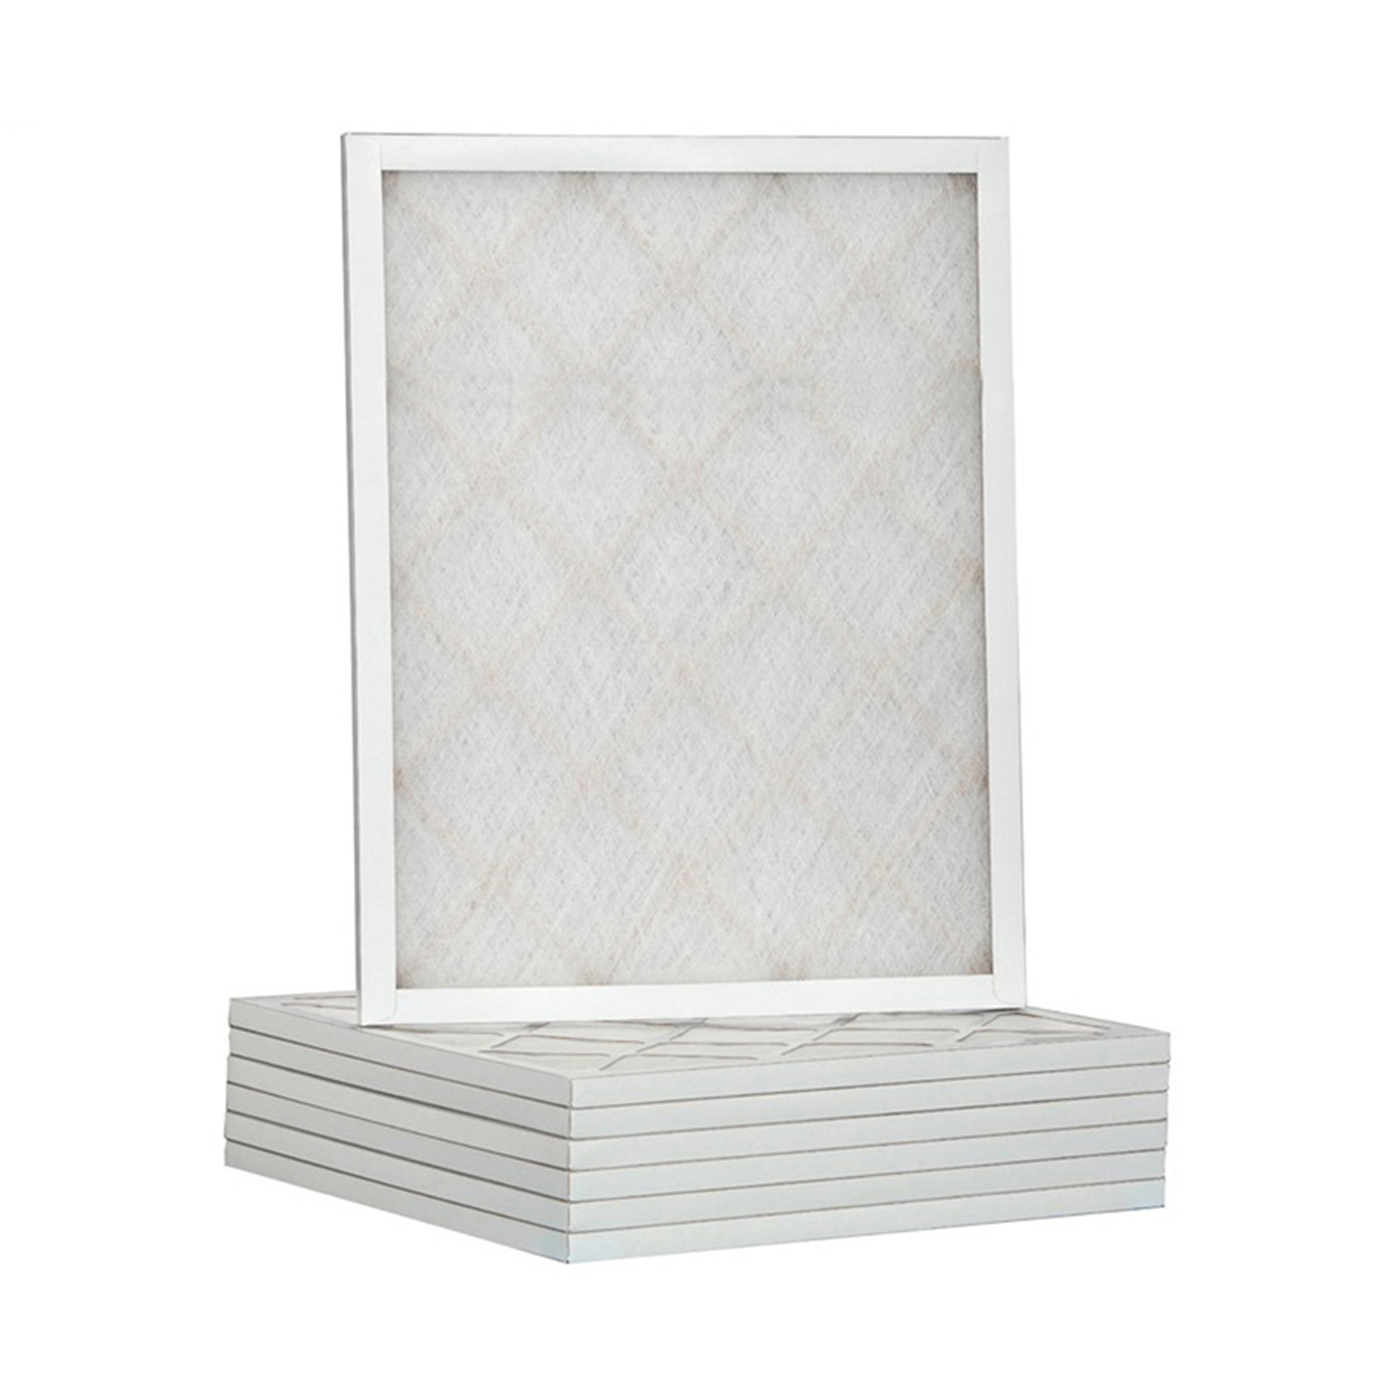 Tier1 20 x 22-1/4 x 2  MERV 6 - 6 Pack Air Filters (D50S-622022D) TIER1_D50S_622022D_6_PACK